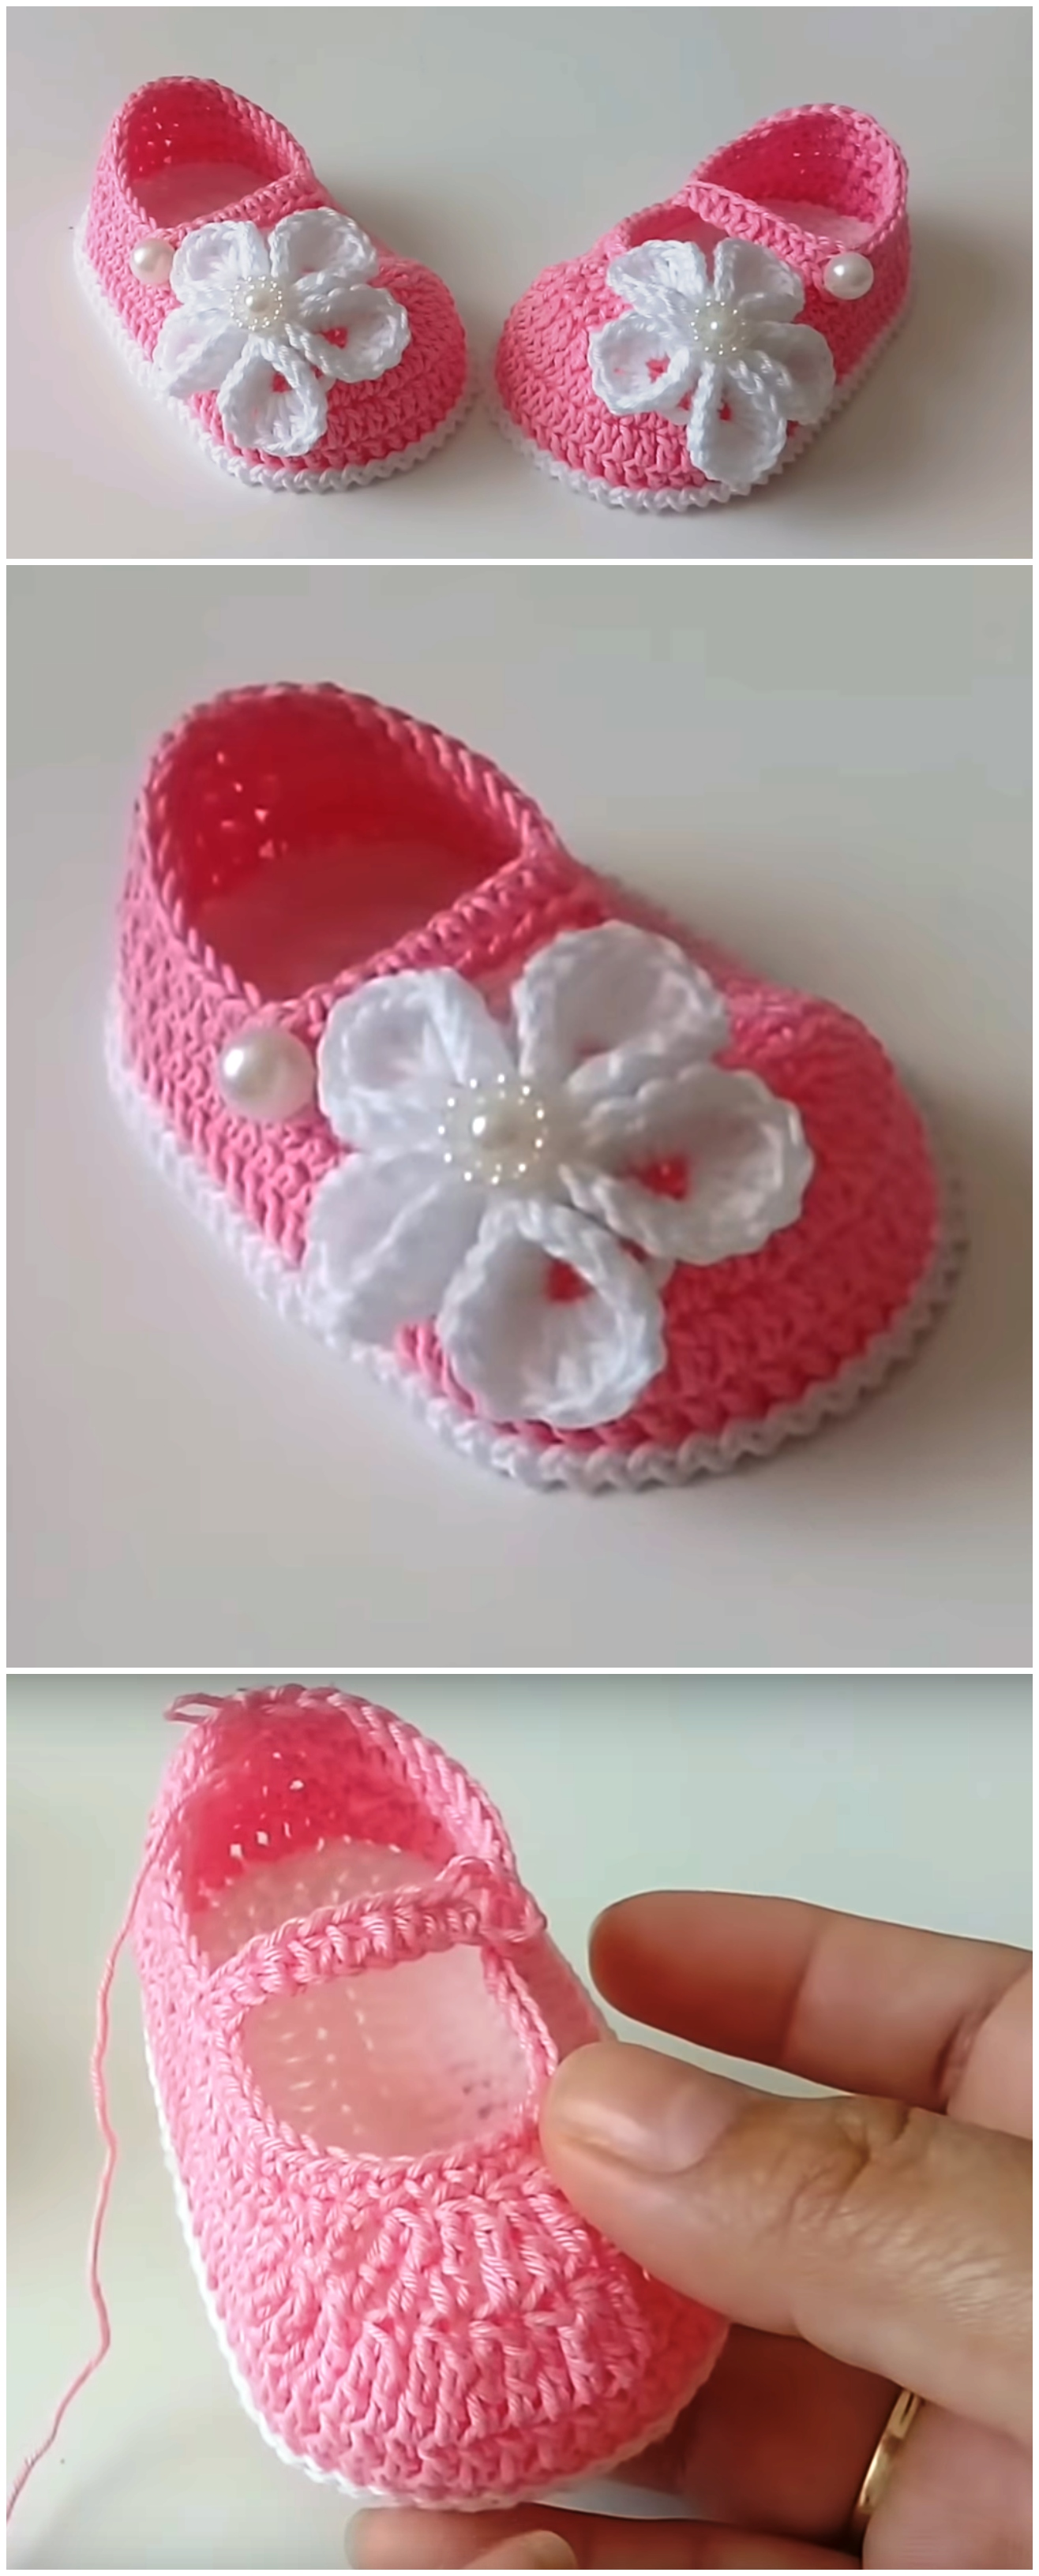 Crochet Baby Shoes With Cute Flower